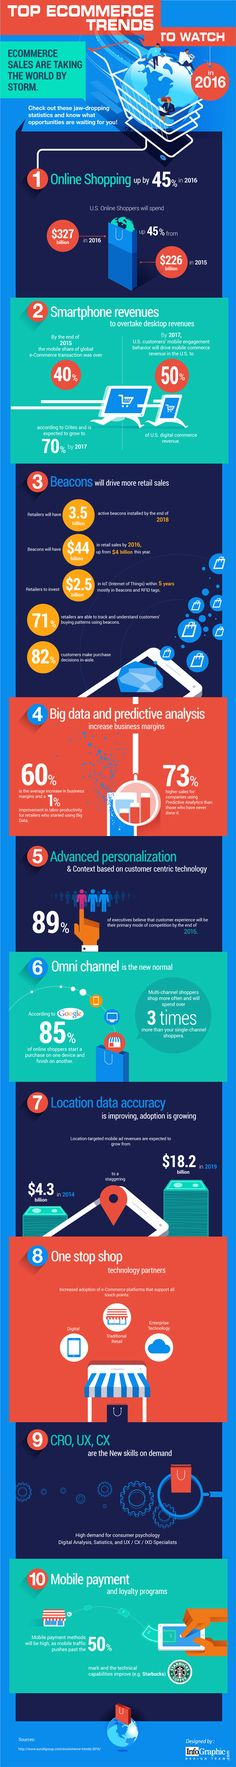 Top E-commerce Trends to Watch in 2016 #Infographic #Ecommerce #Trends